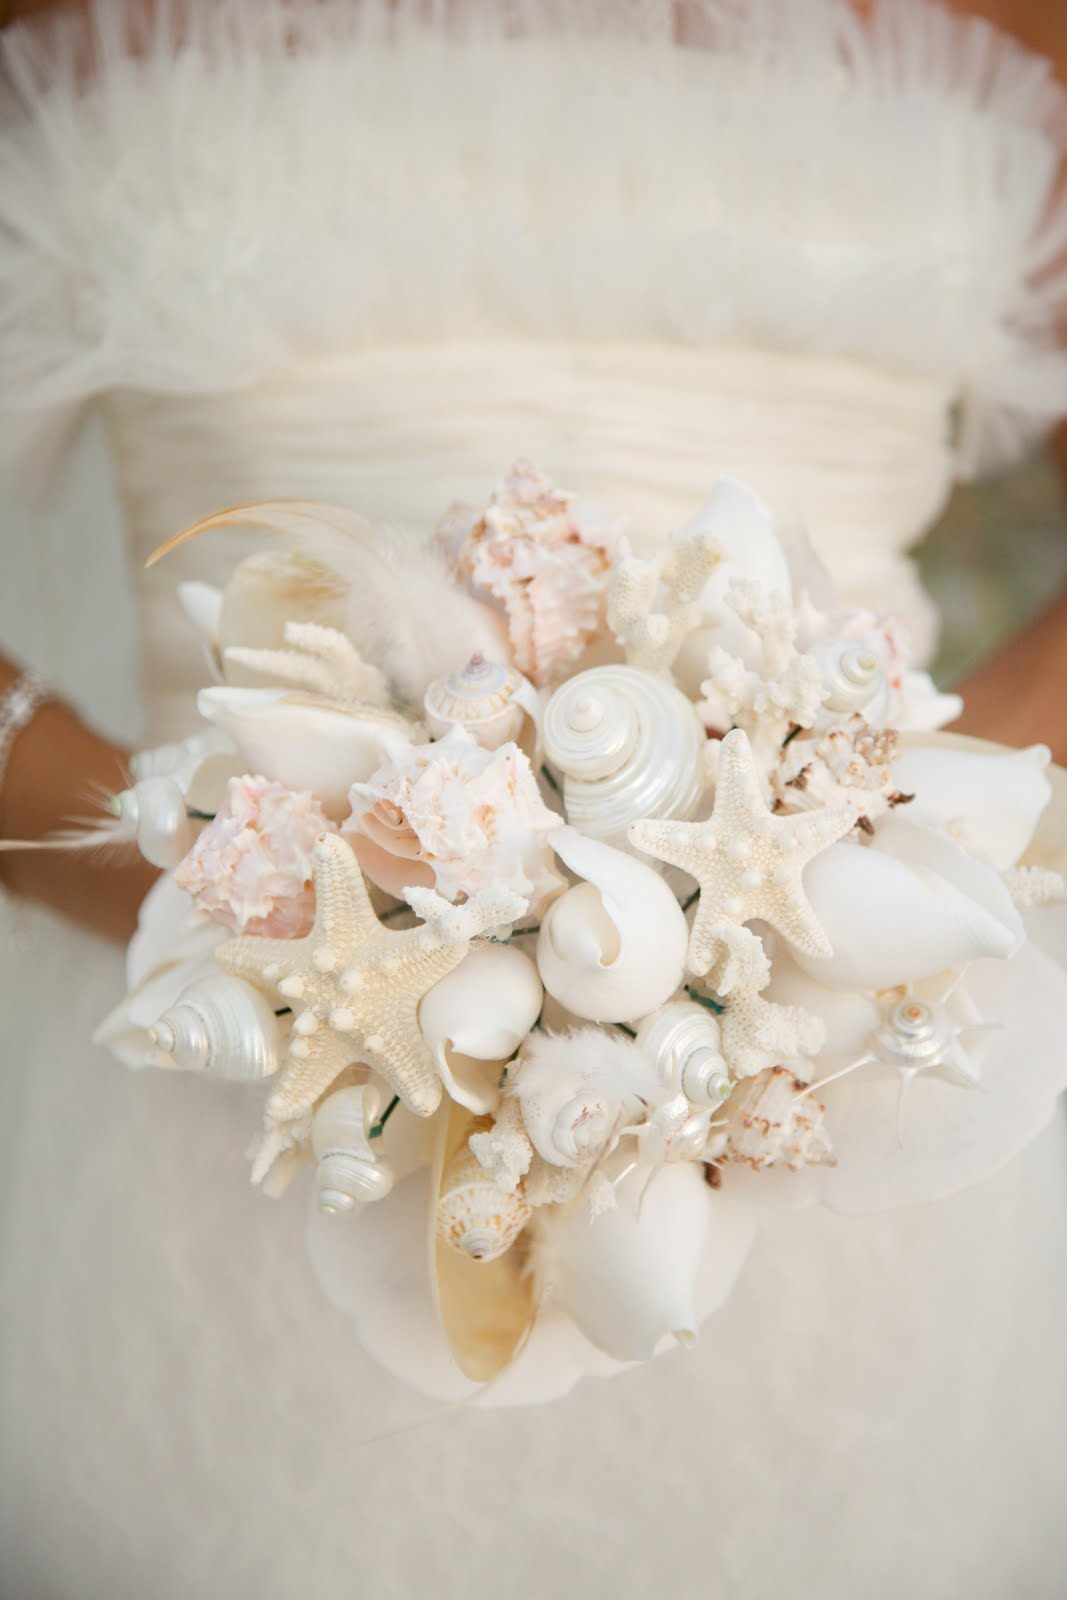 Bouquets Were Perfect For This Gulf Girl 39 S Gulf Side Wedding We Had A